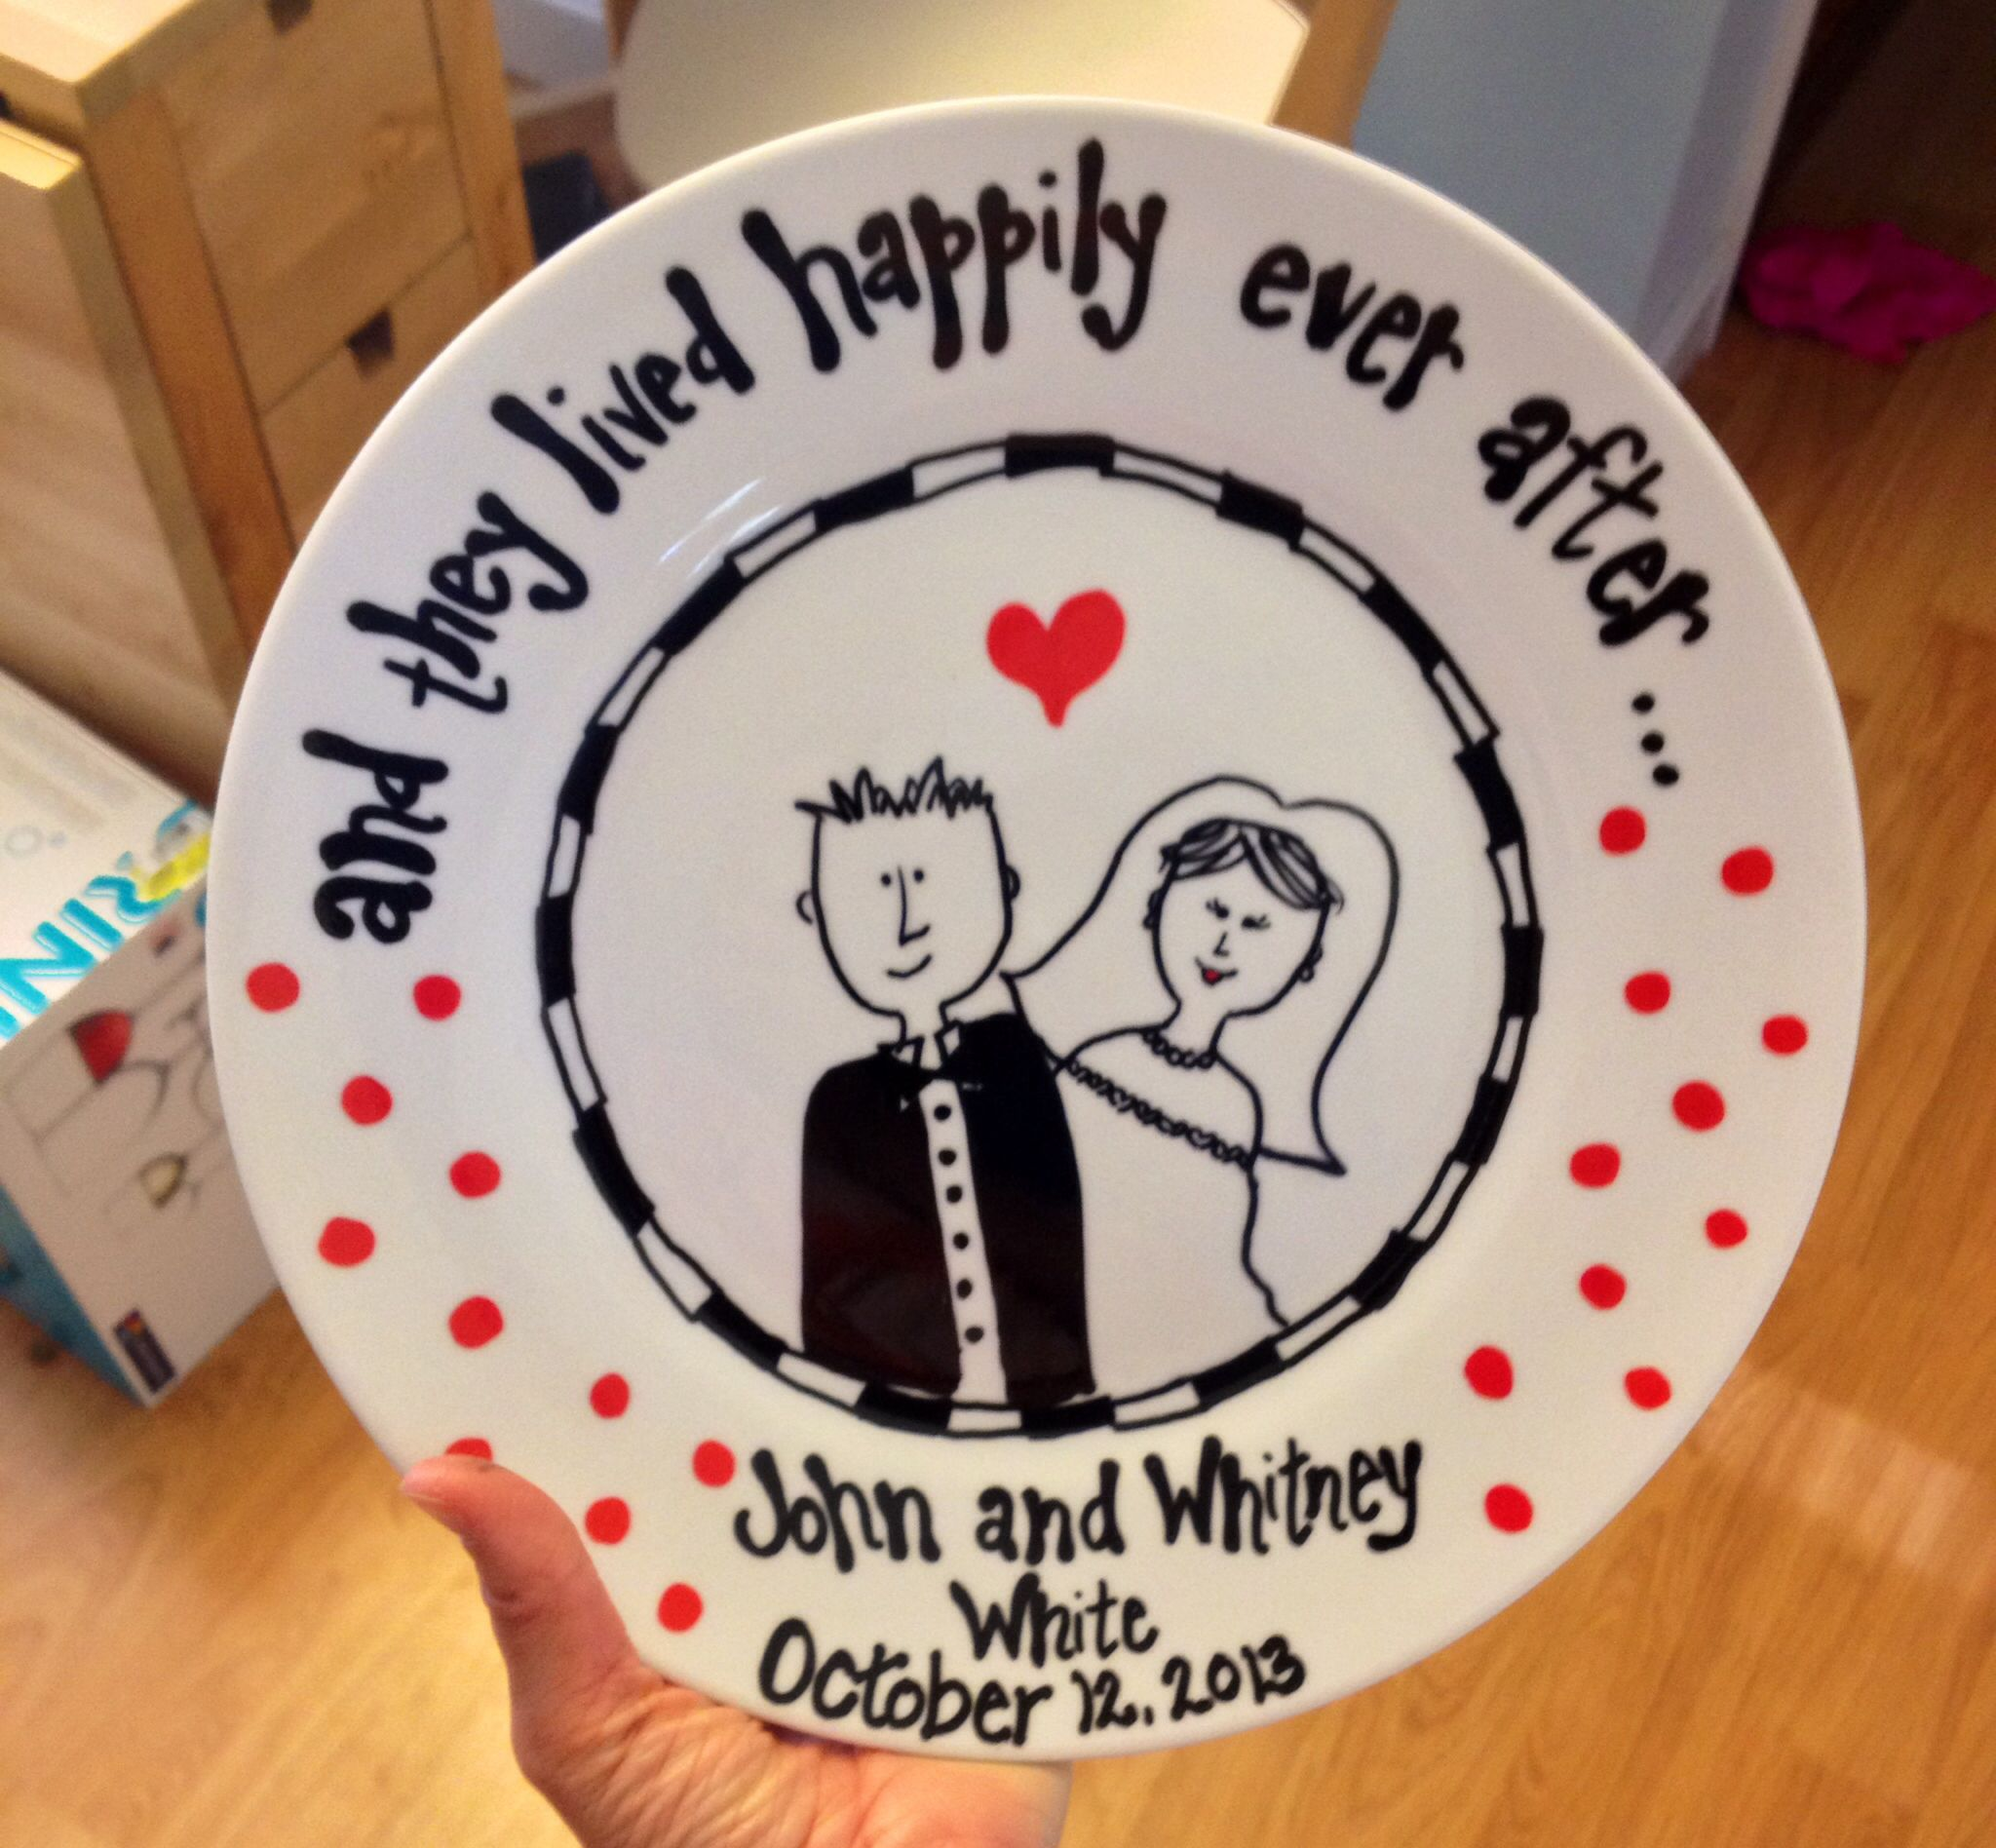 Childrens Wedding Gifts: Wedding Gift, Would Be Cute DIY From Kids!